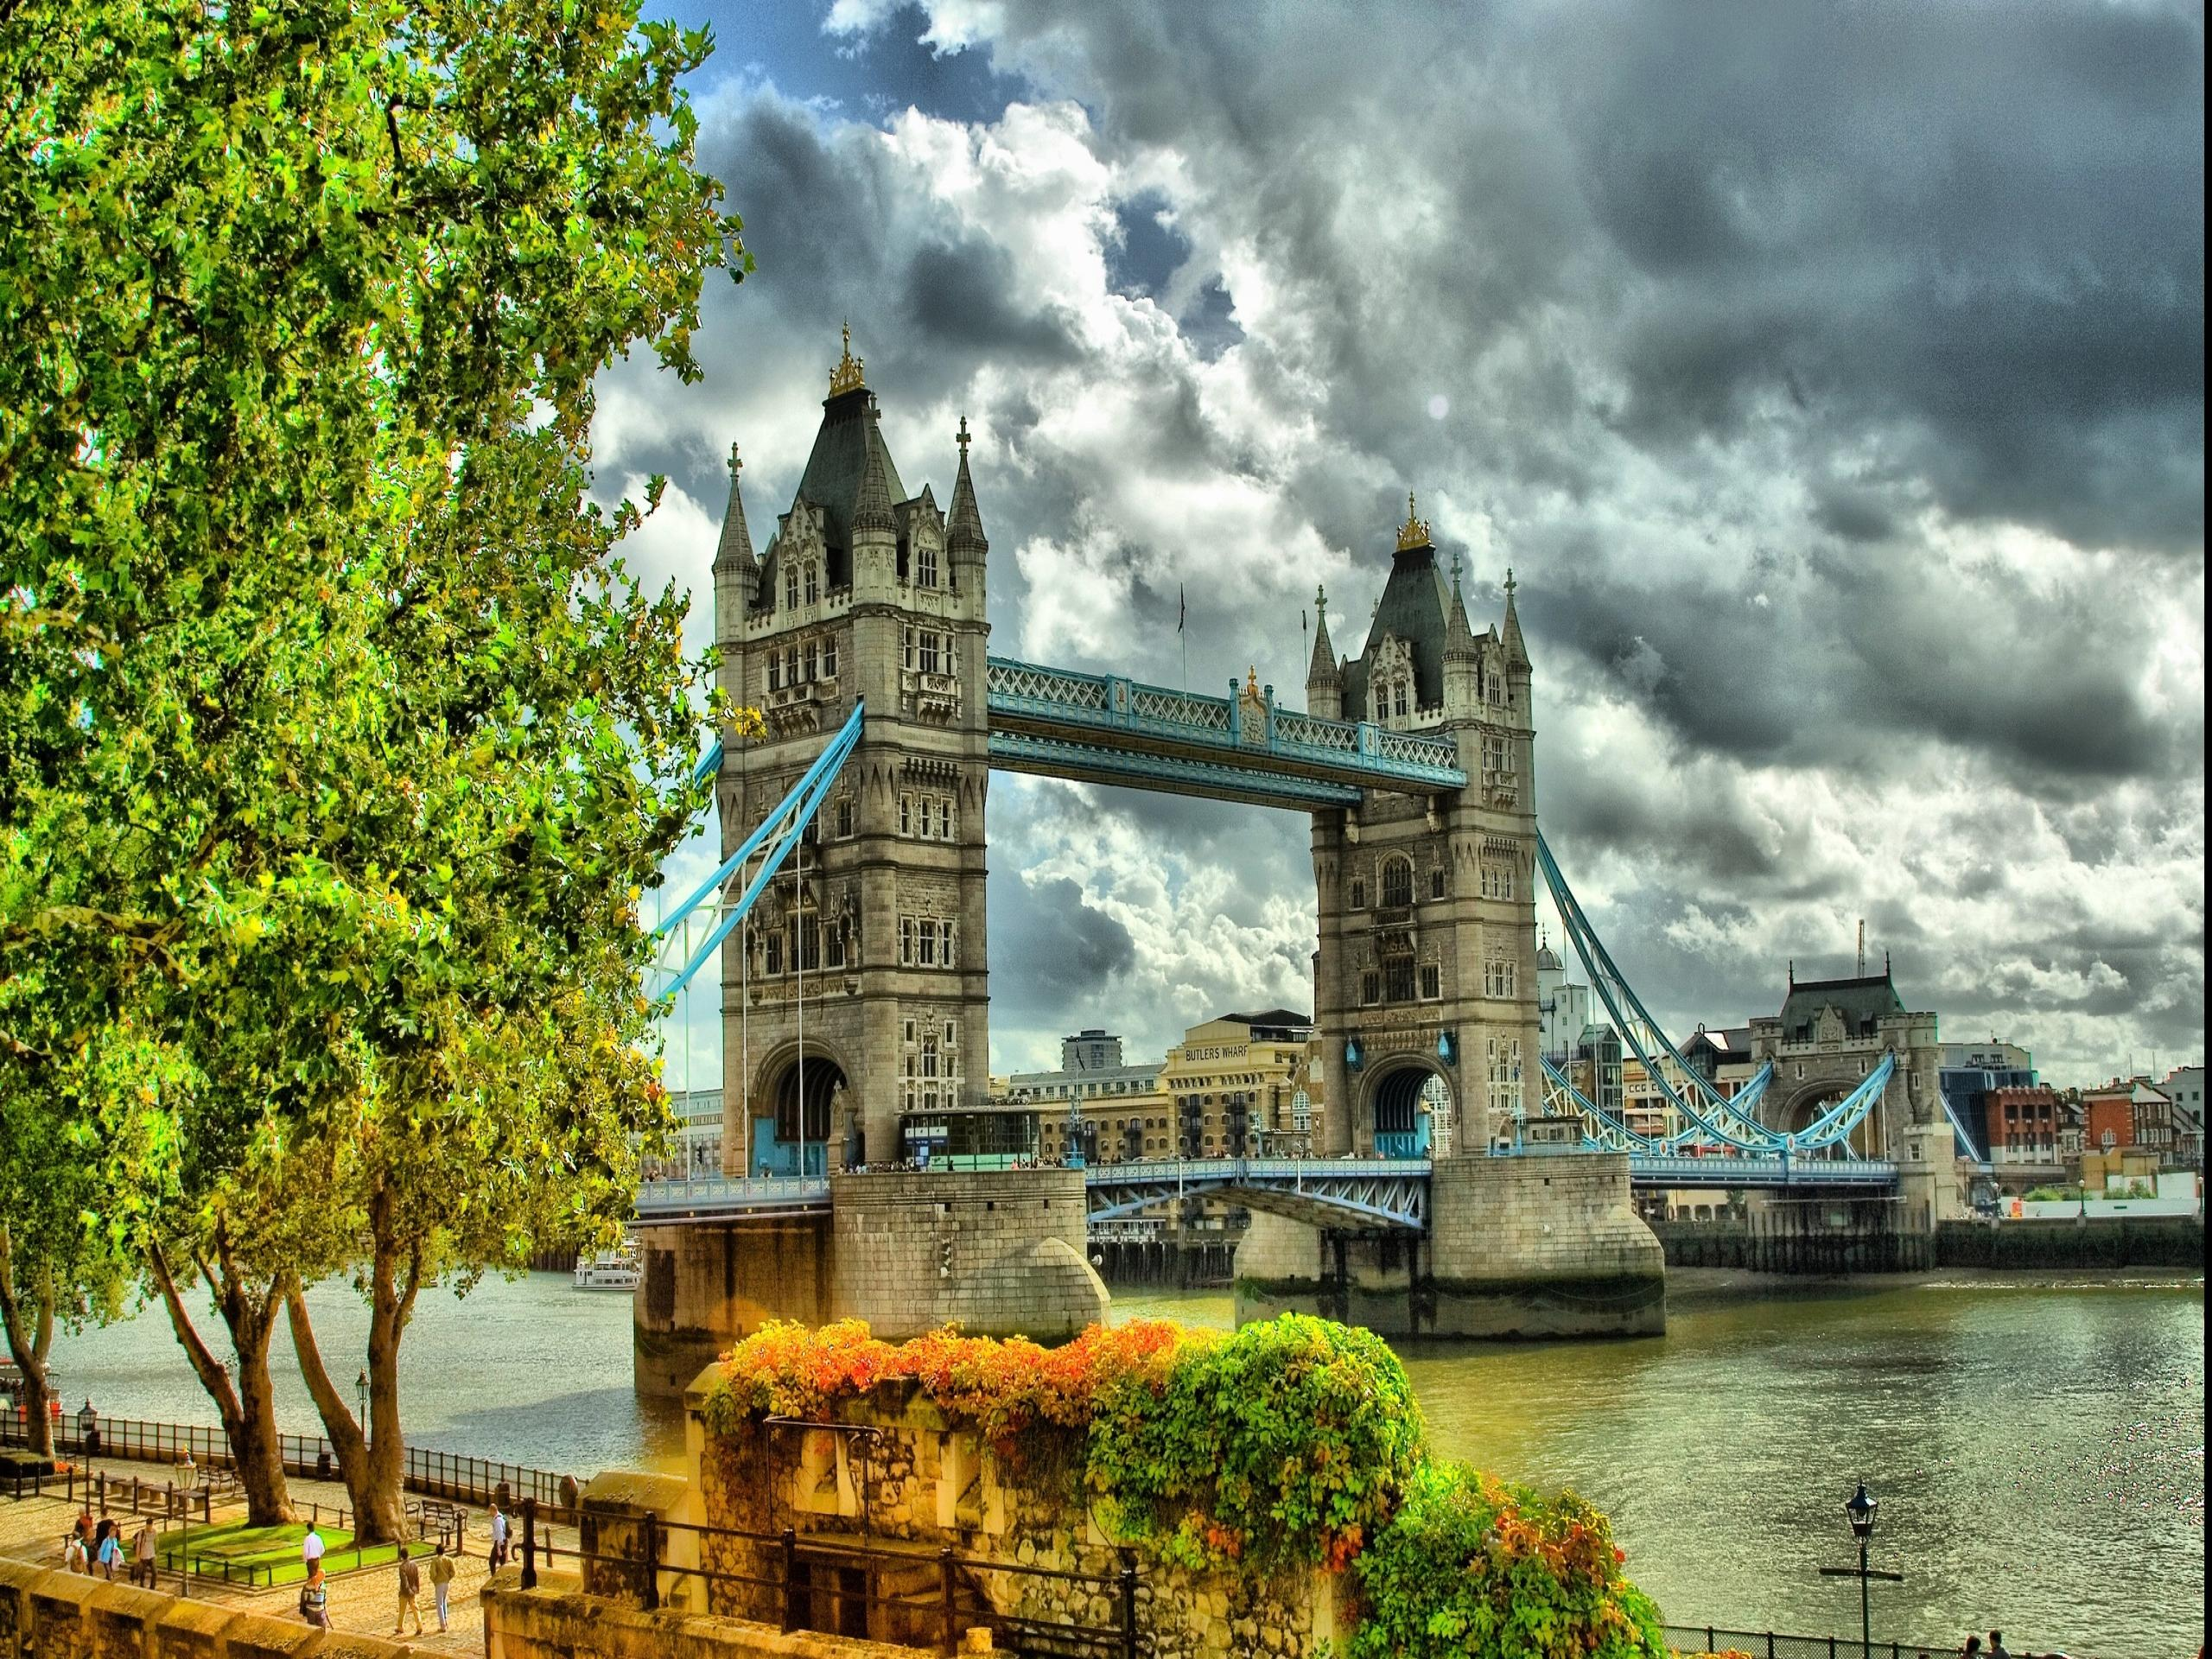 Tower Bridge Wallpapers 2.24 Mb | WallpapersExpert.com